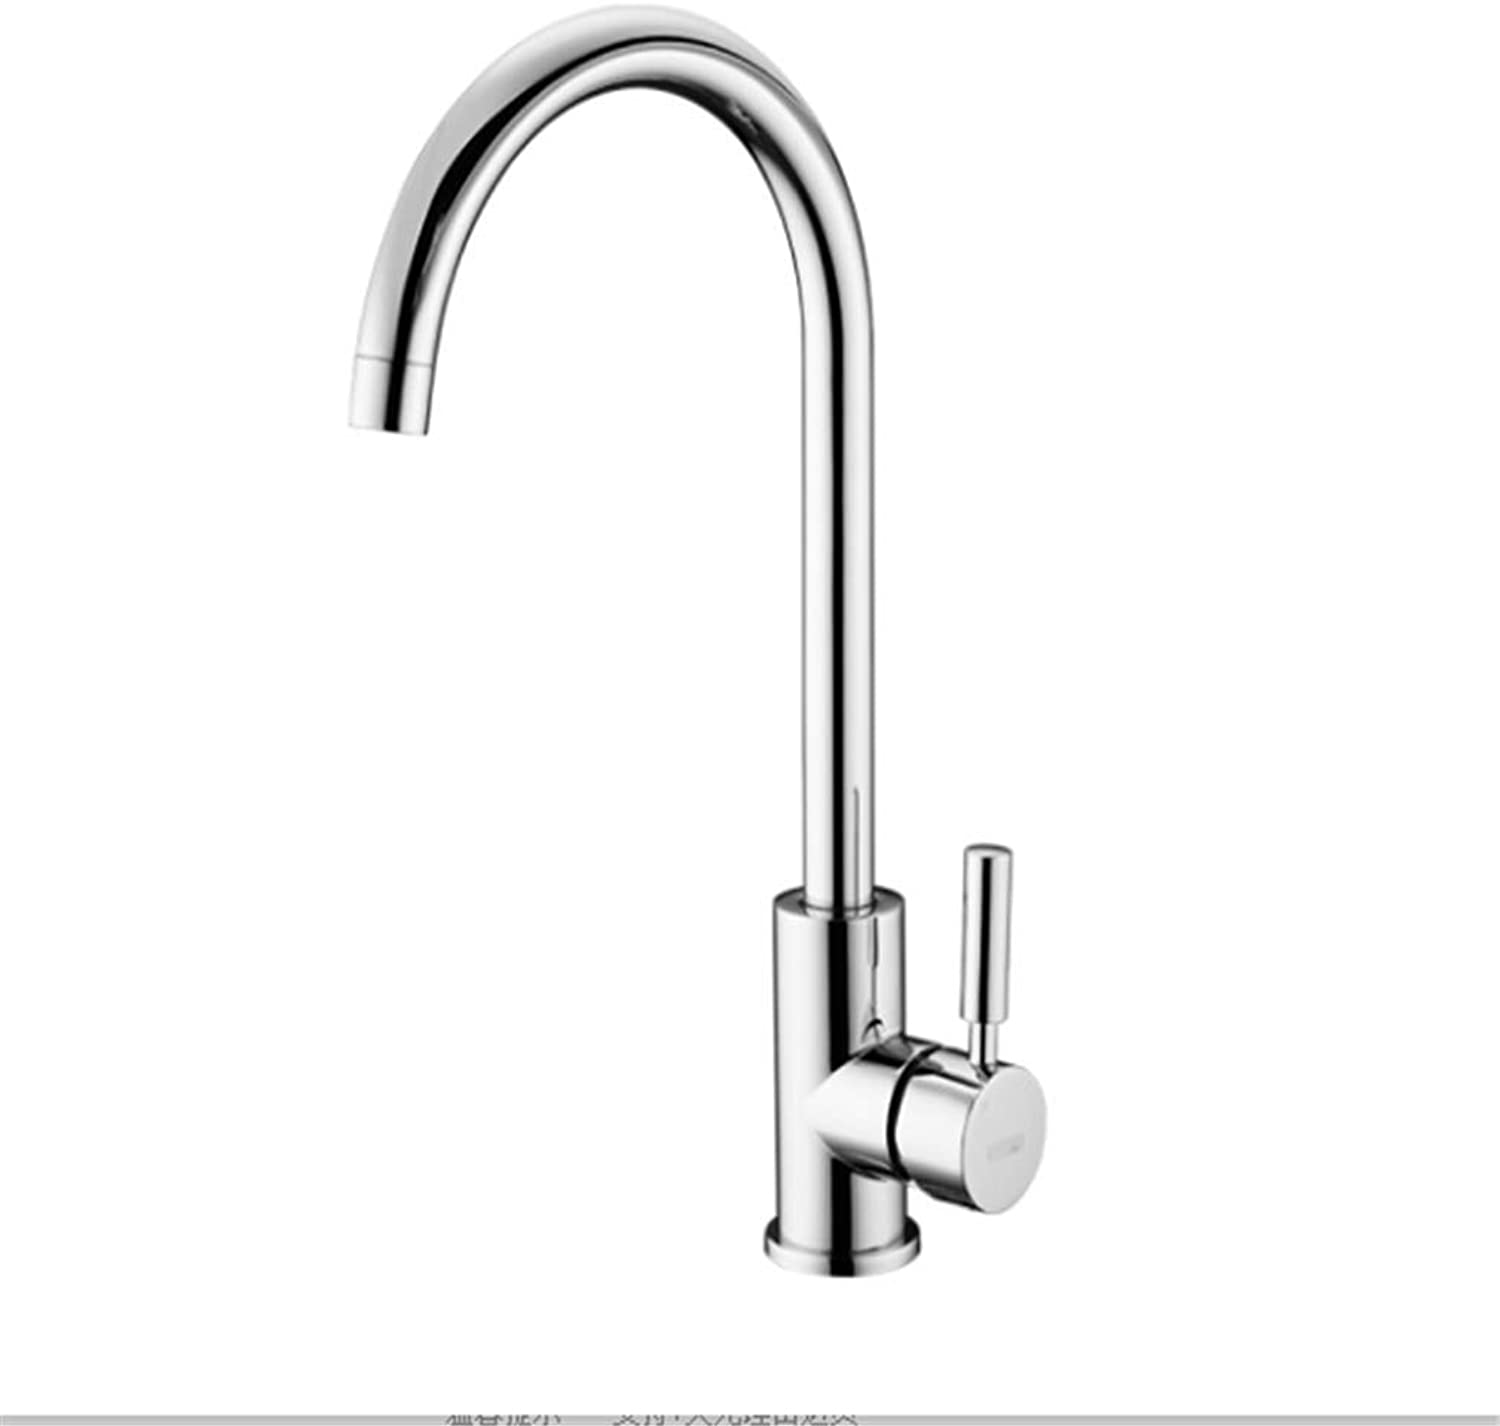 Counter Drinking Designer Archbathroom Kitchen Faucet Copper Inner Core Cold and Hot Dishwash Basin Faucet